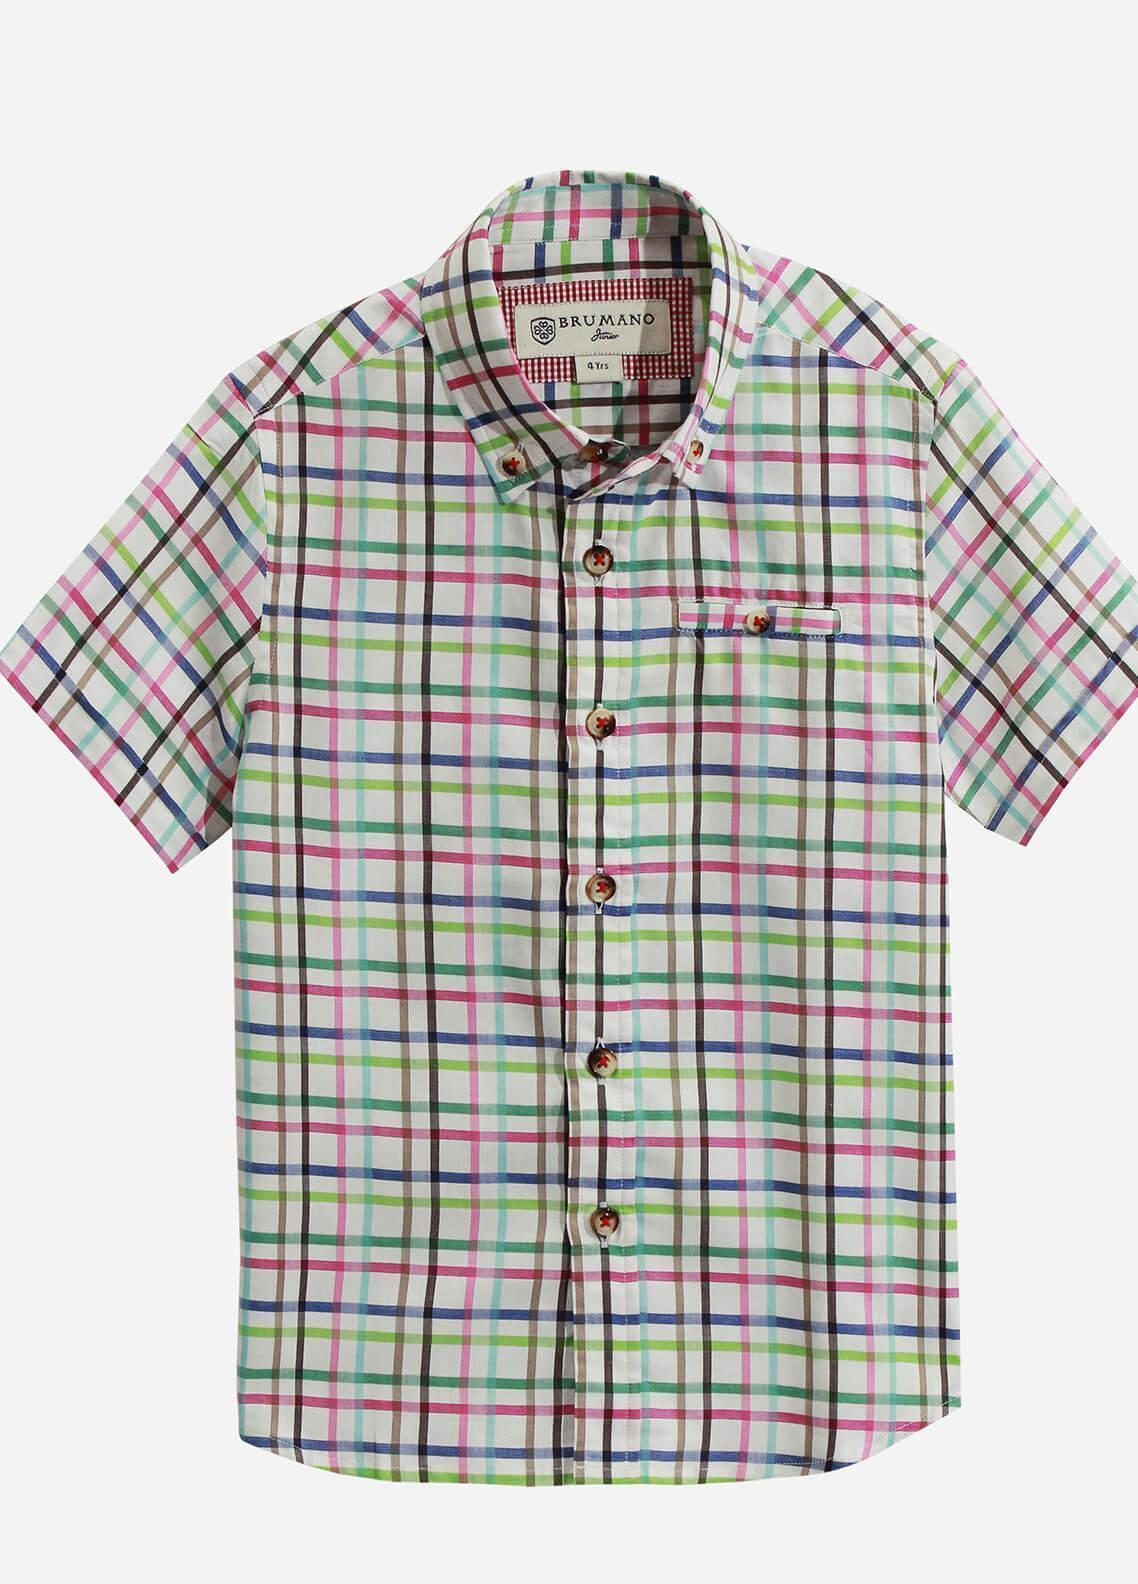 Brumano Cotton Casual Shirts for Boys - Multi BRM-808